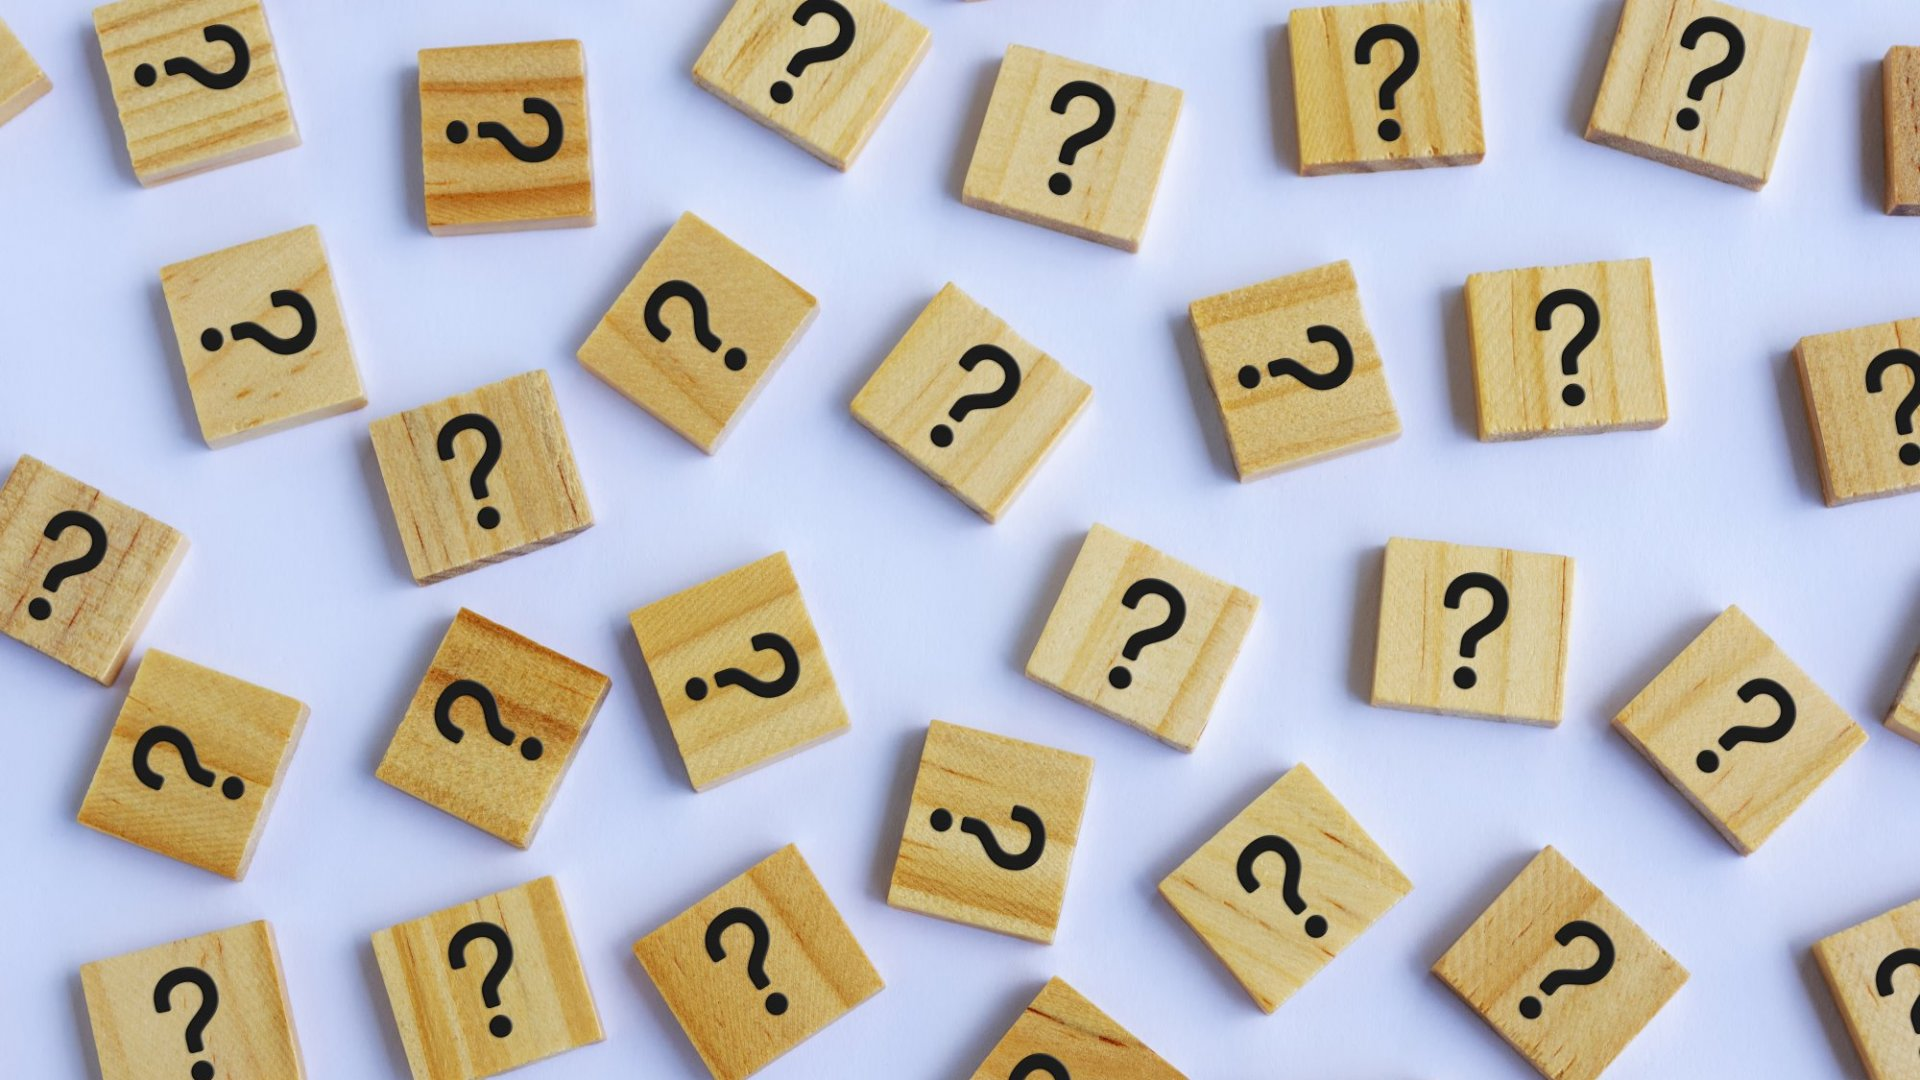 5 Things to Consider When Developing a Name For Your Business